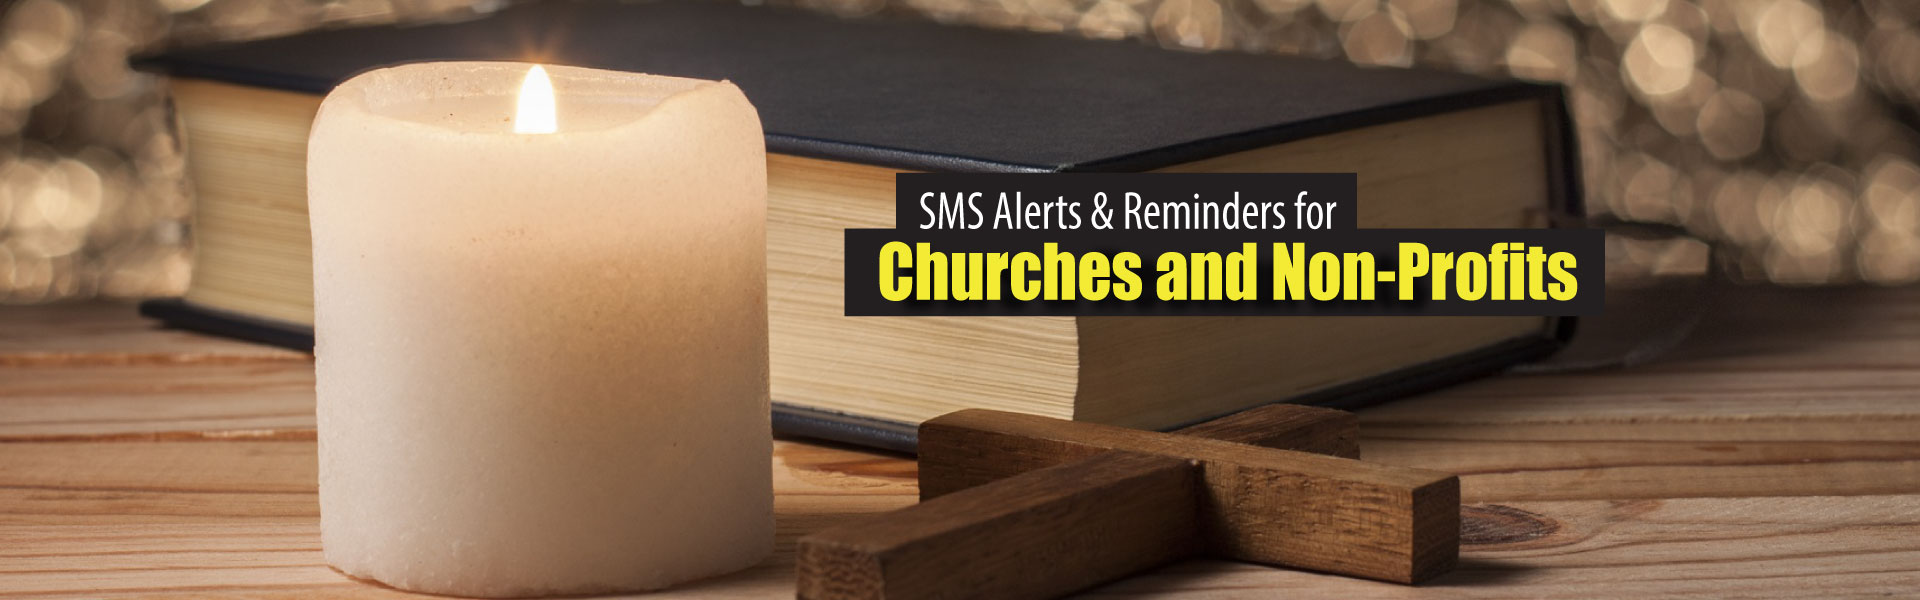 SMS alerts for churches